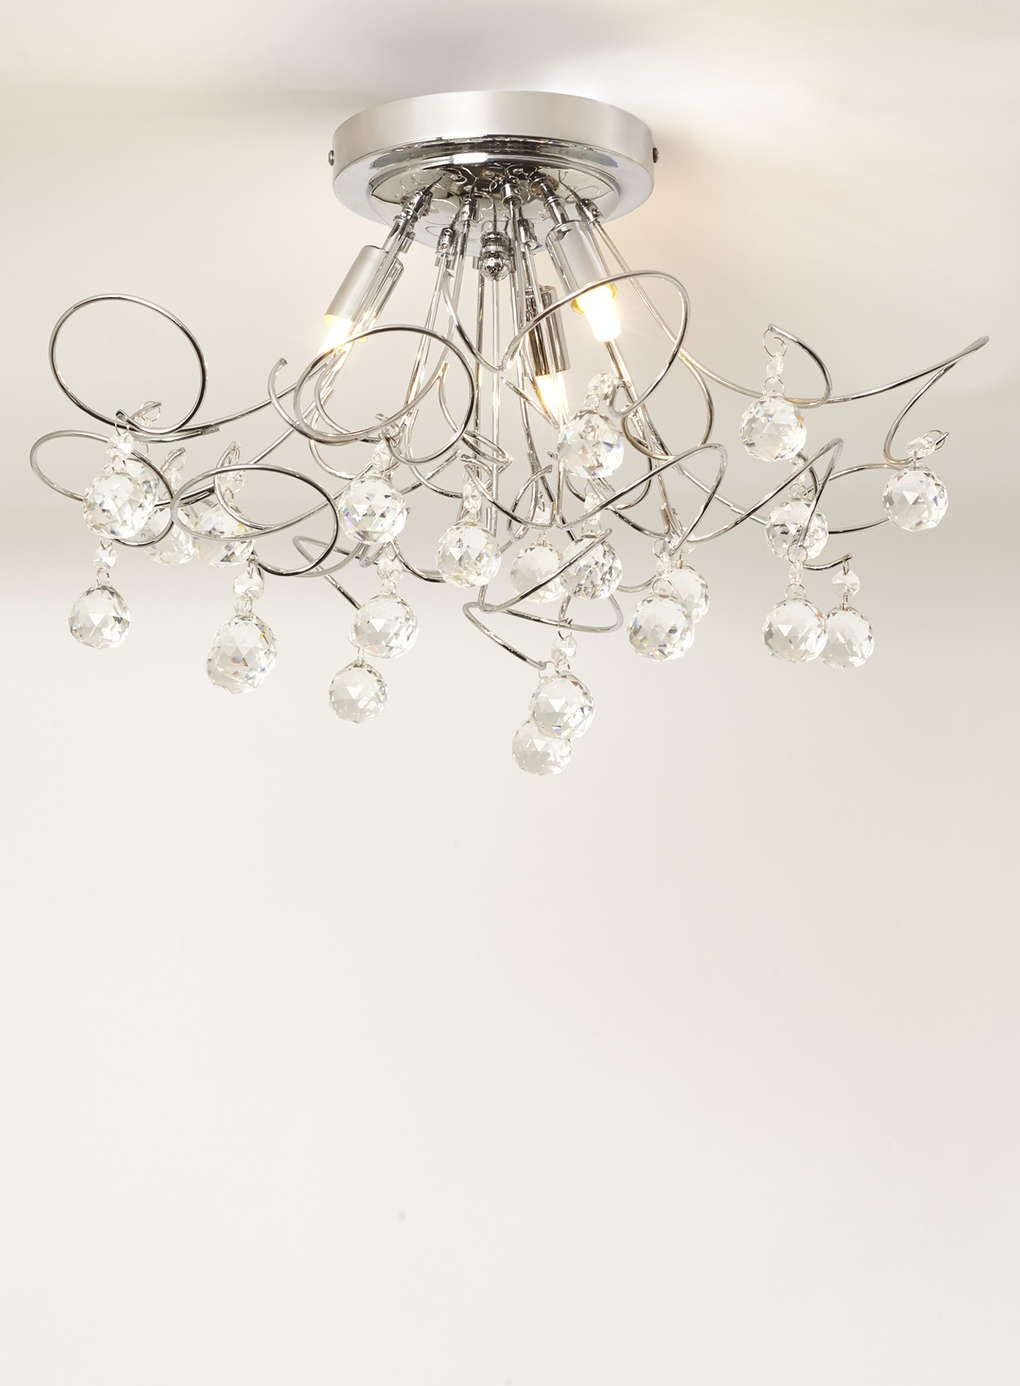 Twirling anushka flush ceiling light chrome bhs lighting twirling anushka flush ceiling light chrome bhs mozeypictures Image collections